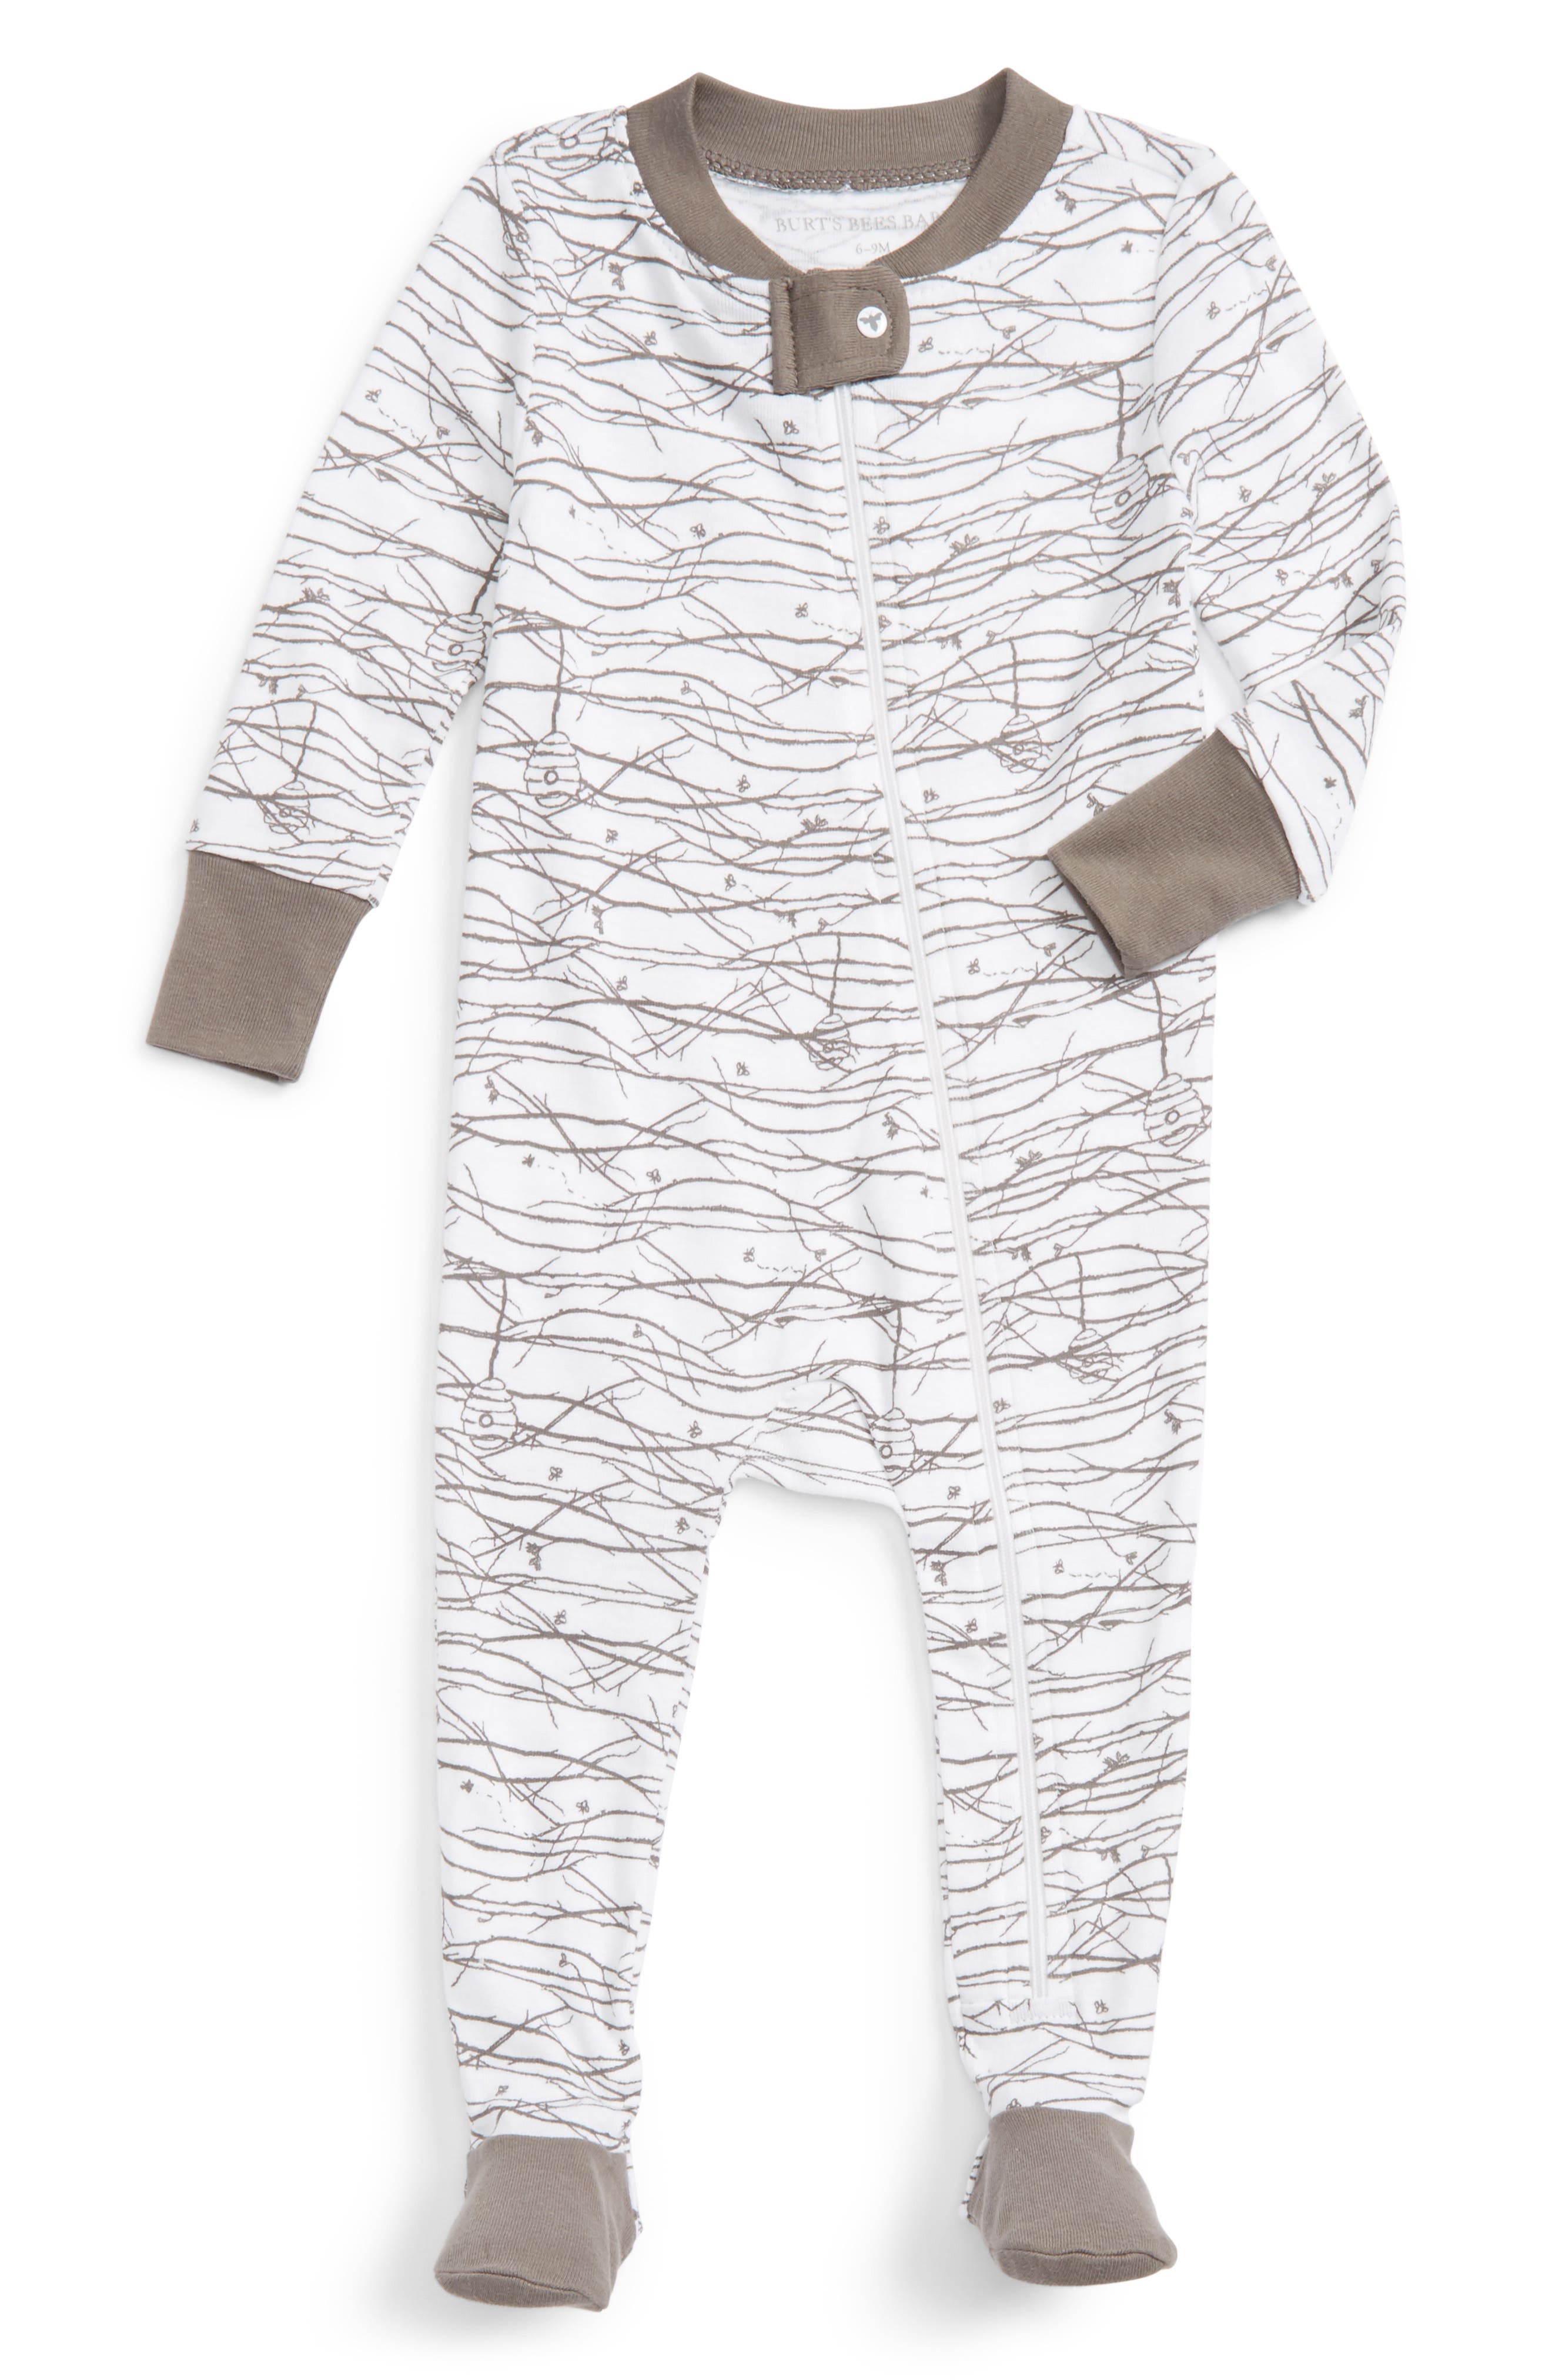 BURTS BEES BABY Autumn Trees Organic Cotton One-Piece Footed Pajamas